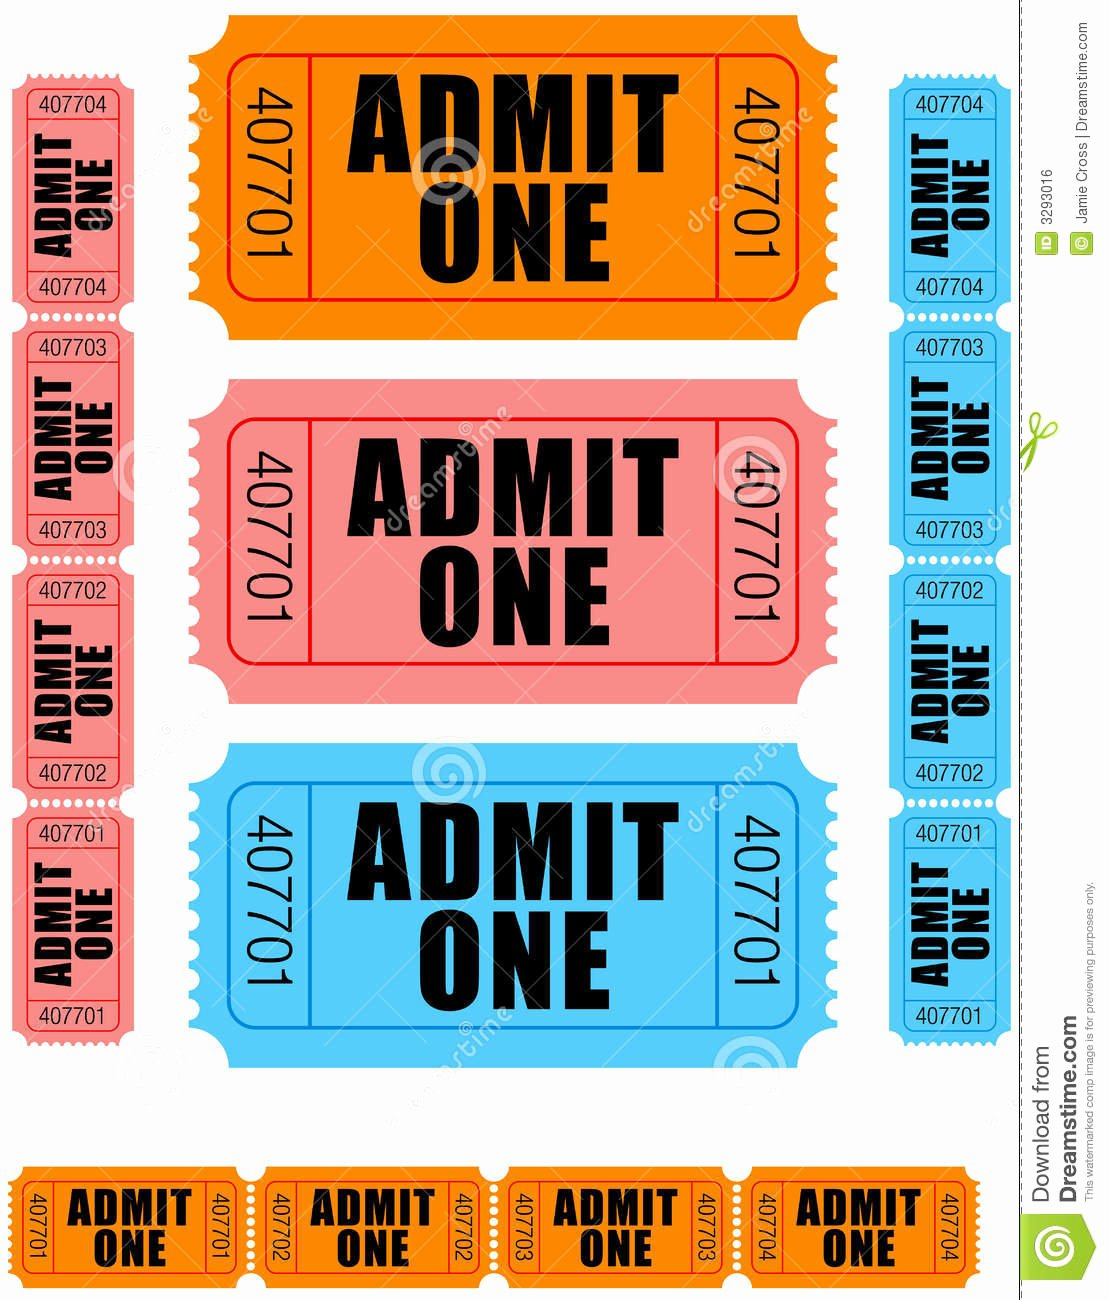 Admit One Ticket Printable New Admit E Tickets 1 Royalty Free Stock Image Image